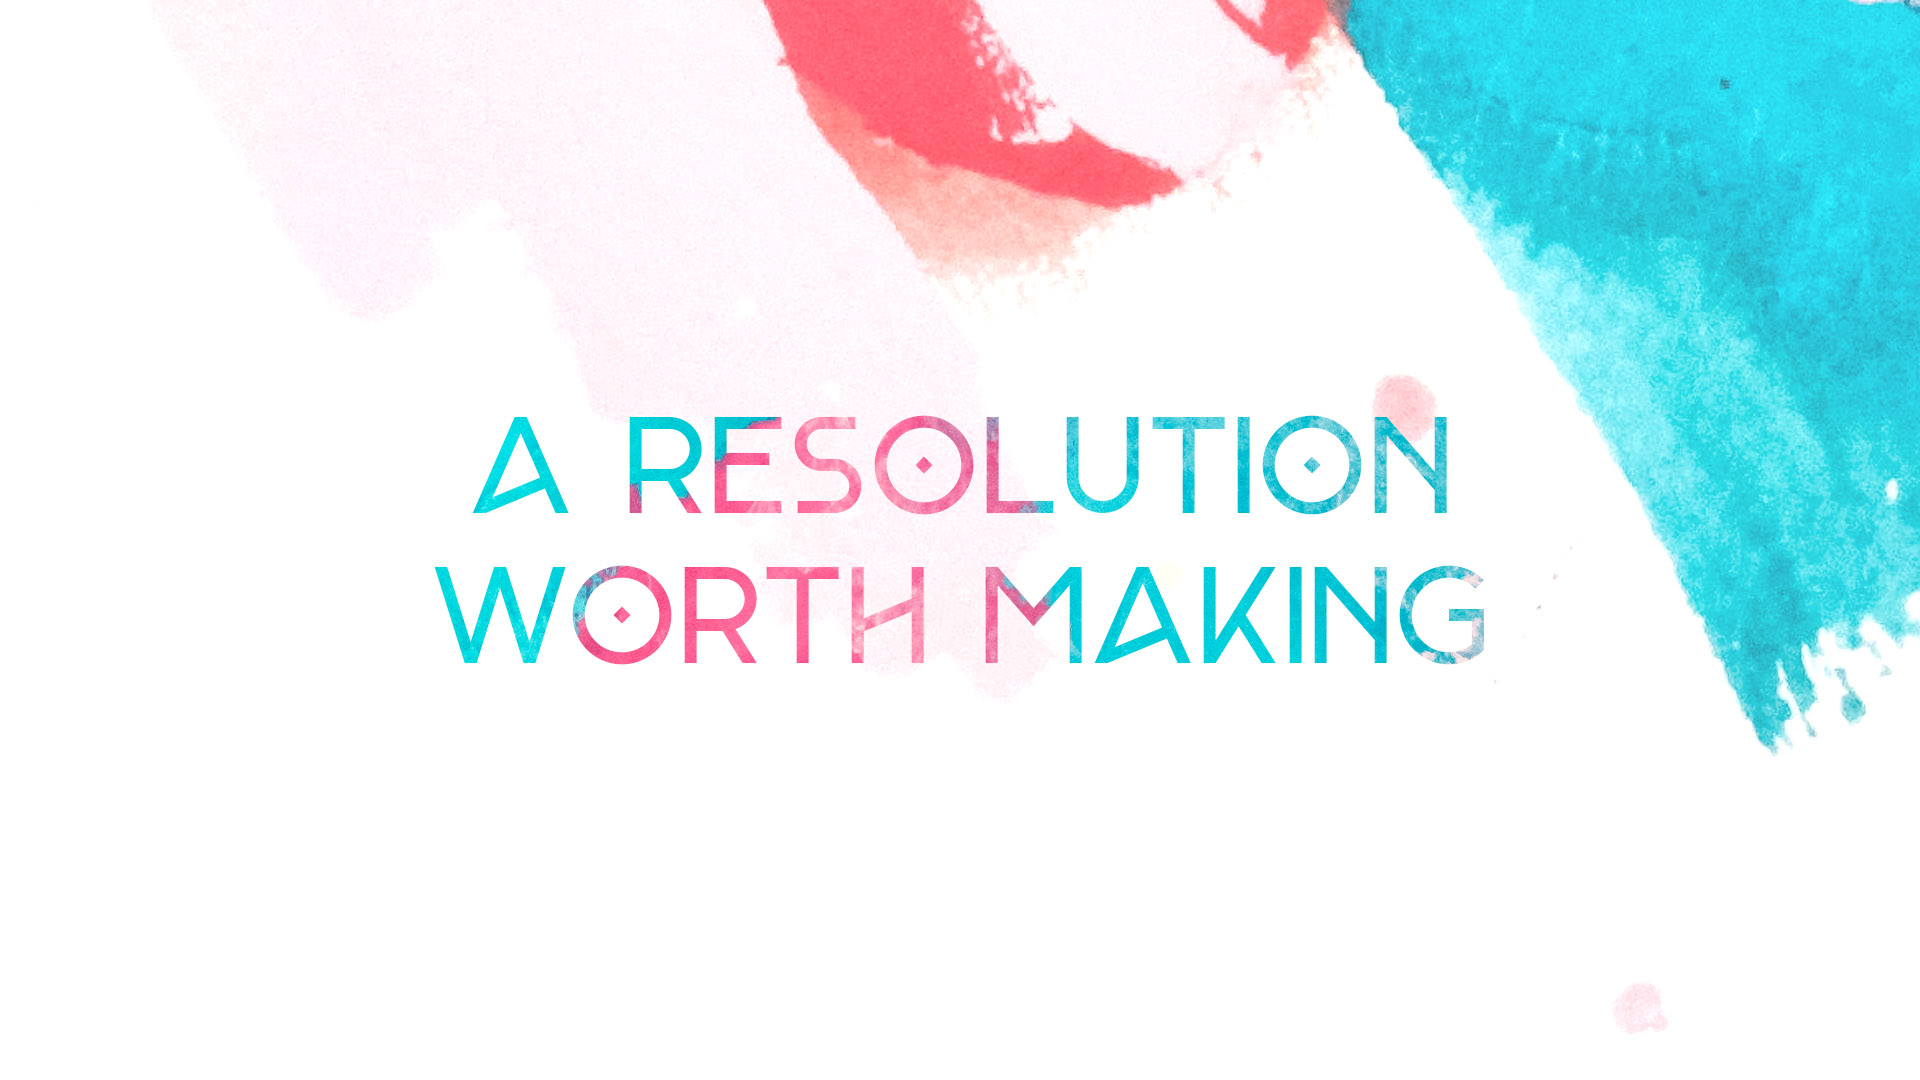 A Resolution Worth Making